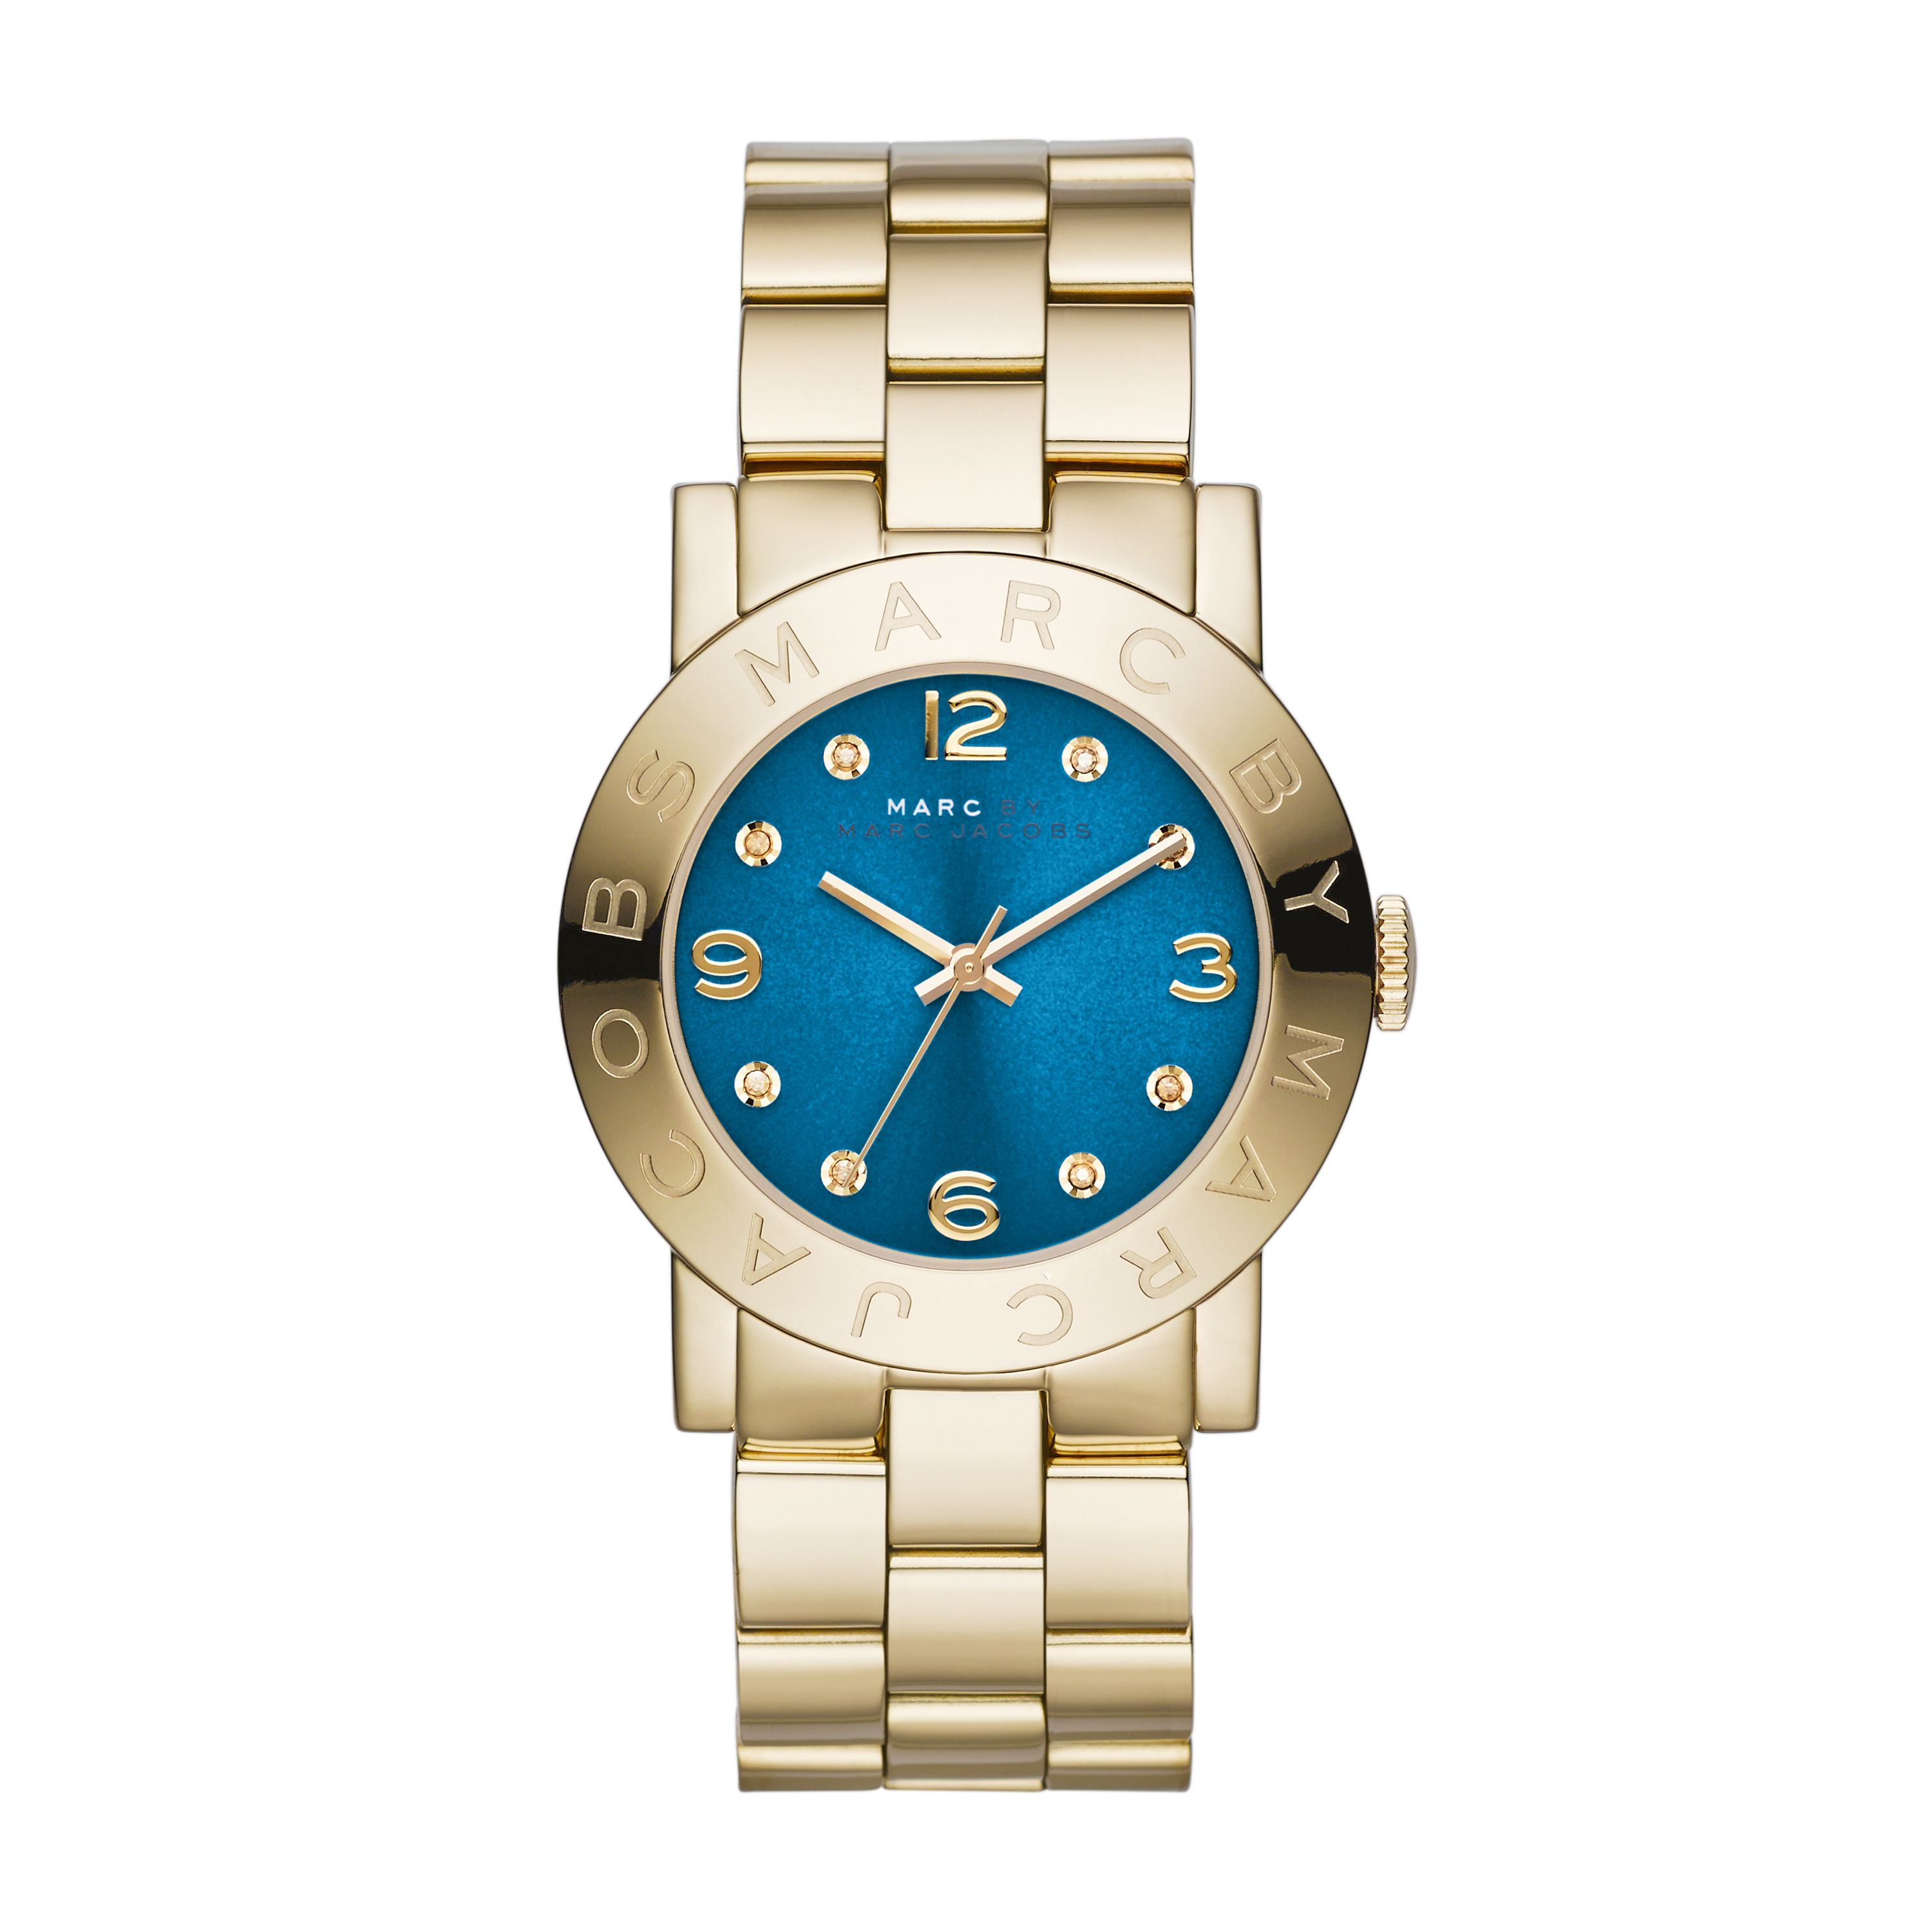 Mbm3303 amy ladies gold bracelet watch